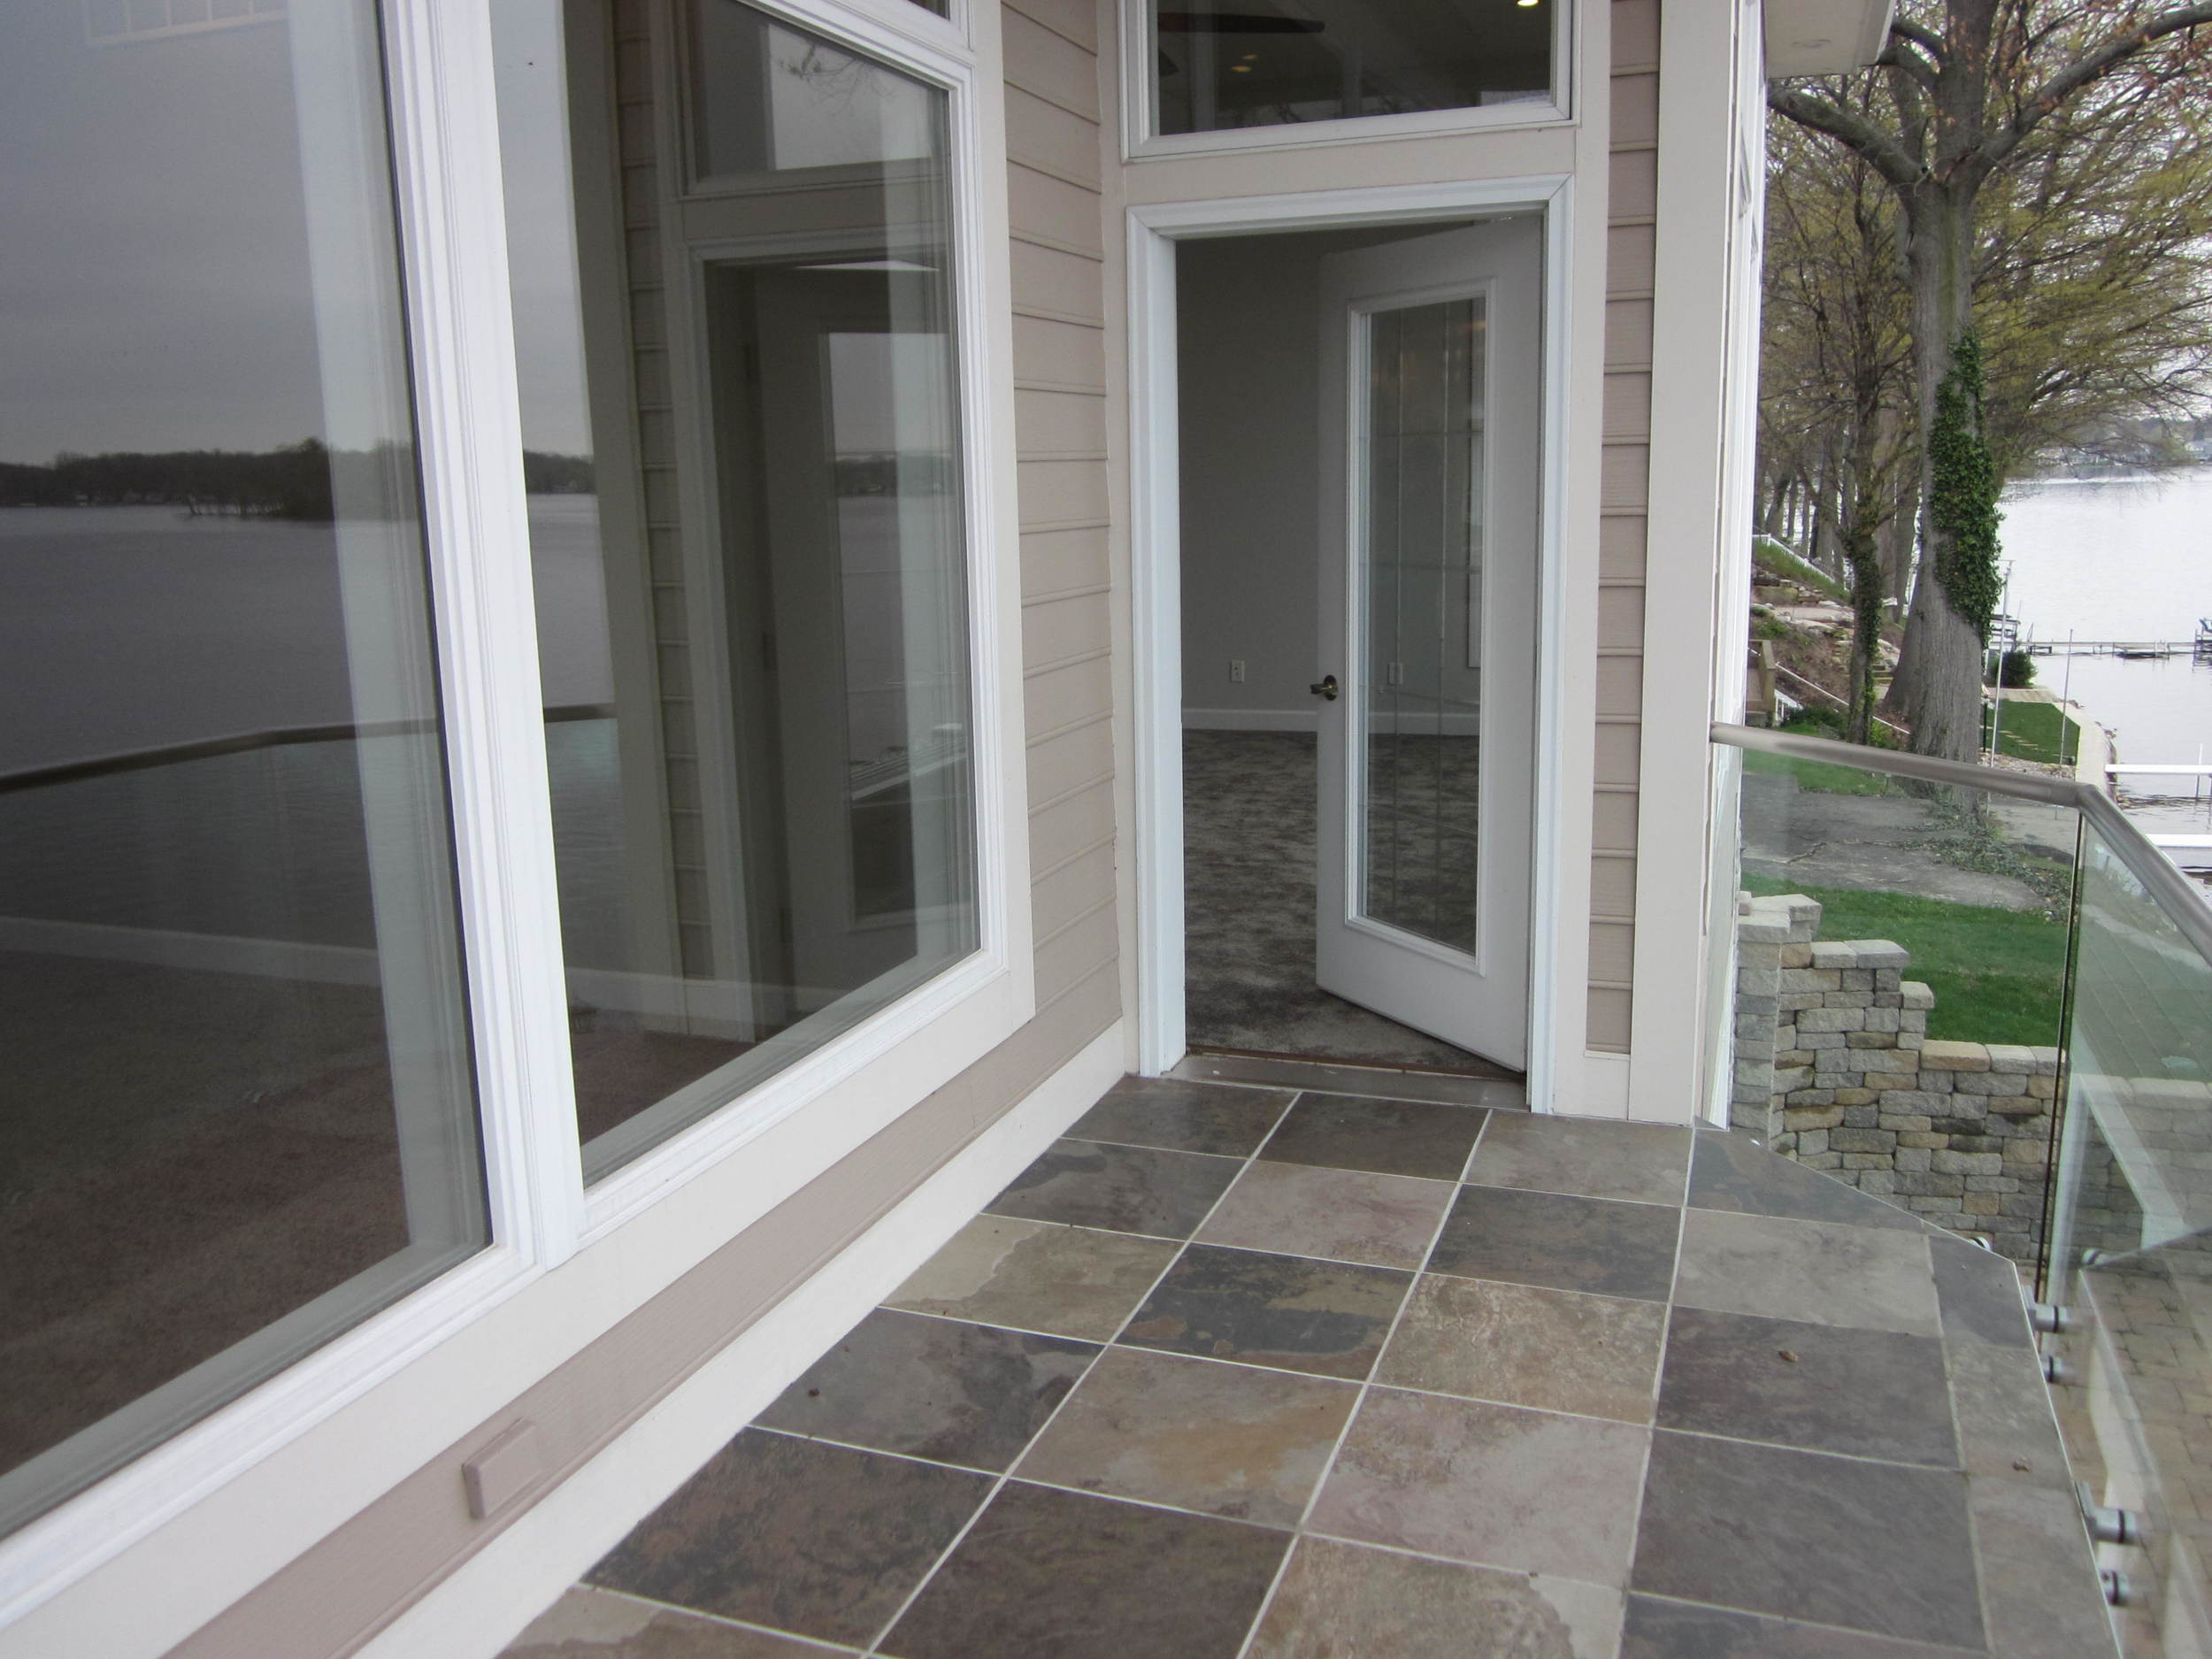 Tiled balcony area with glass railing.